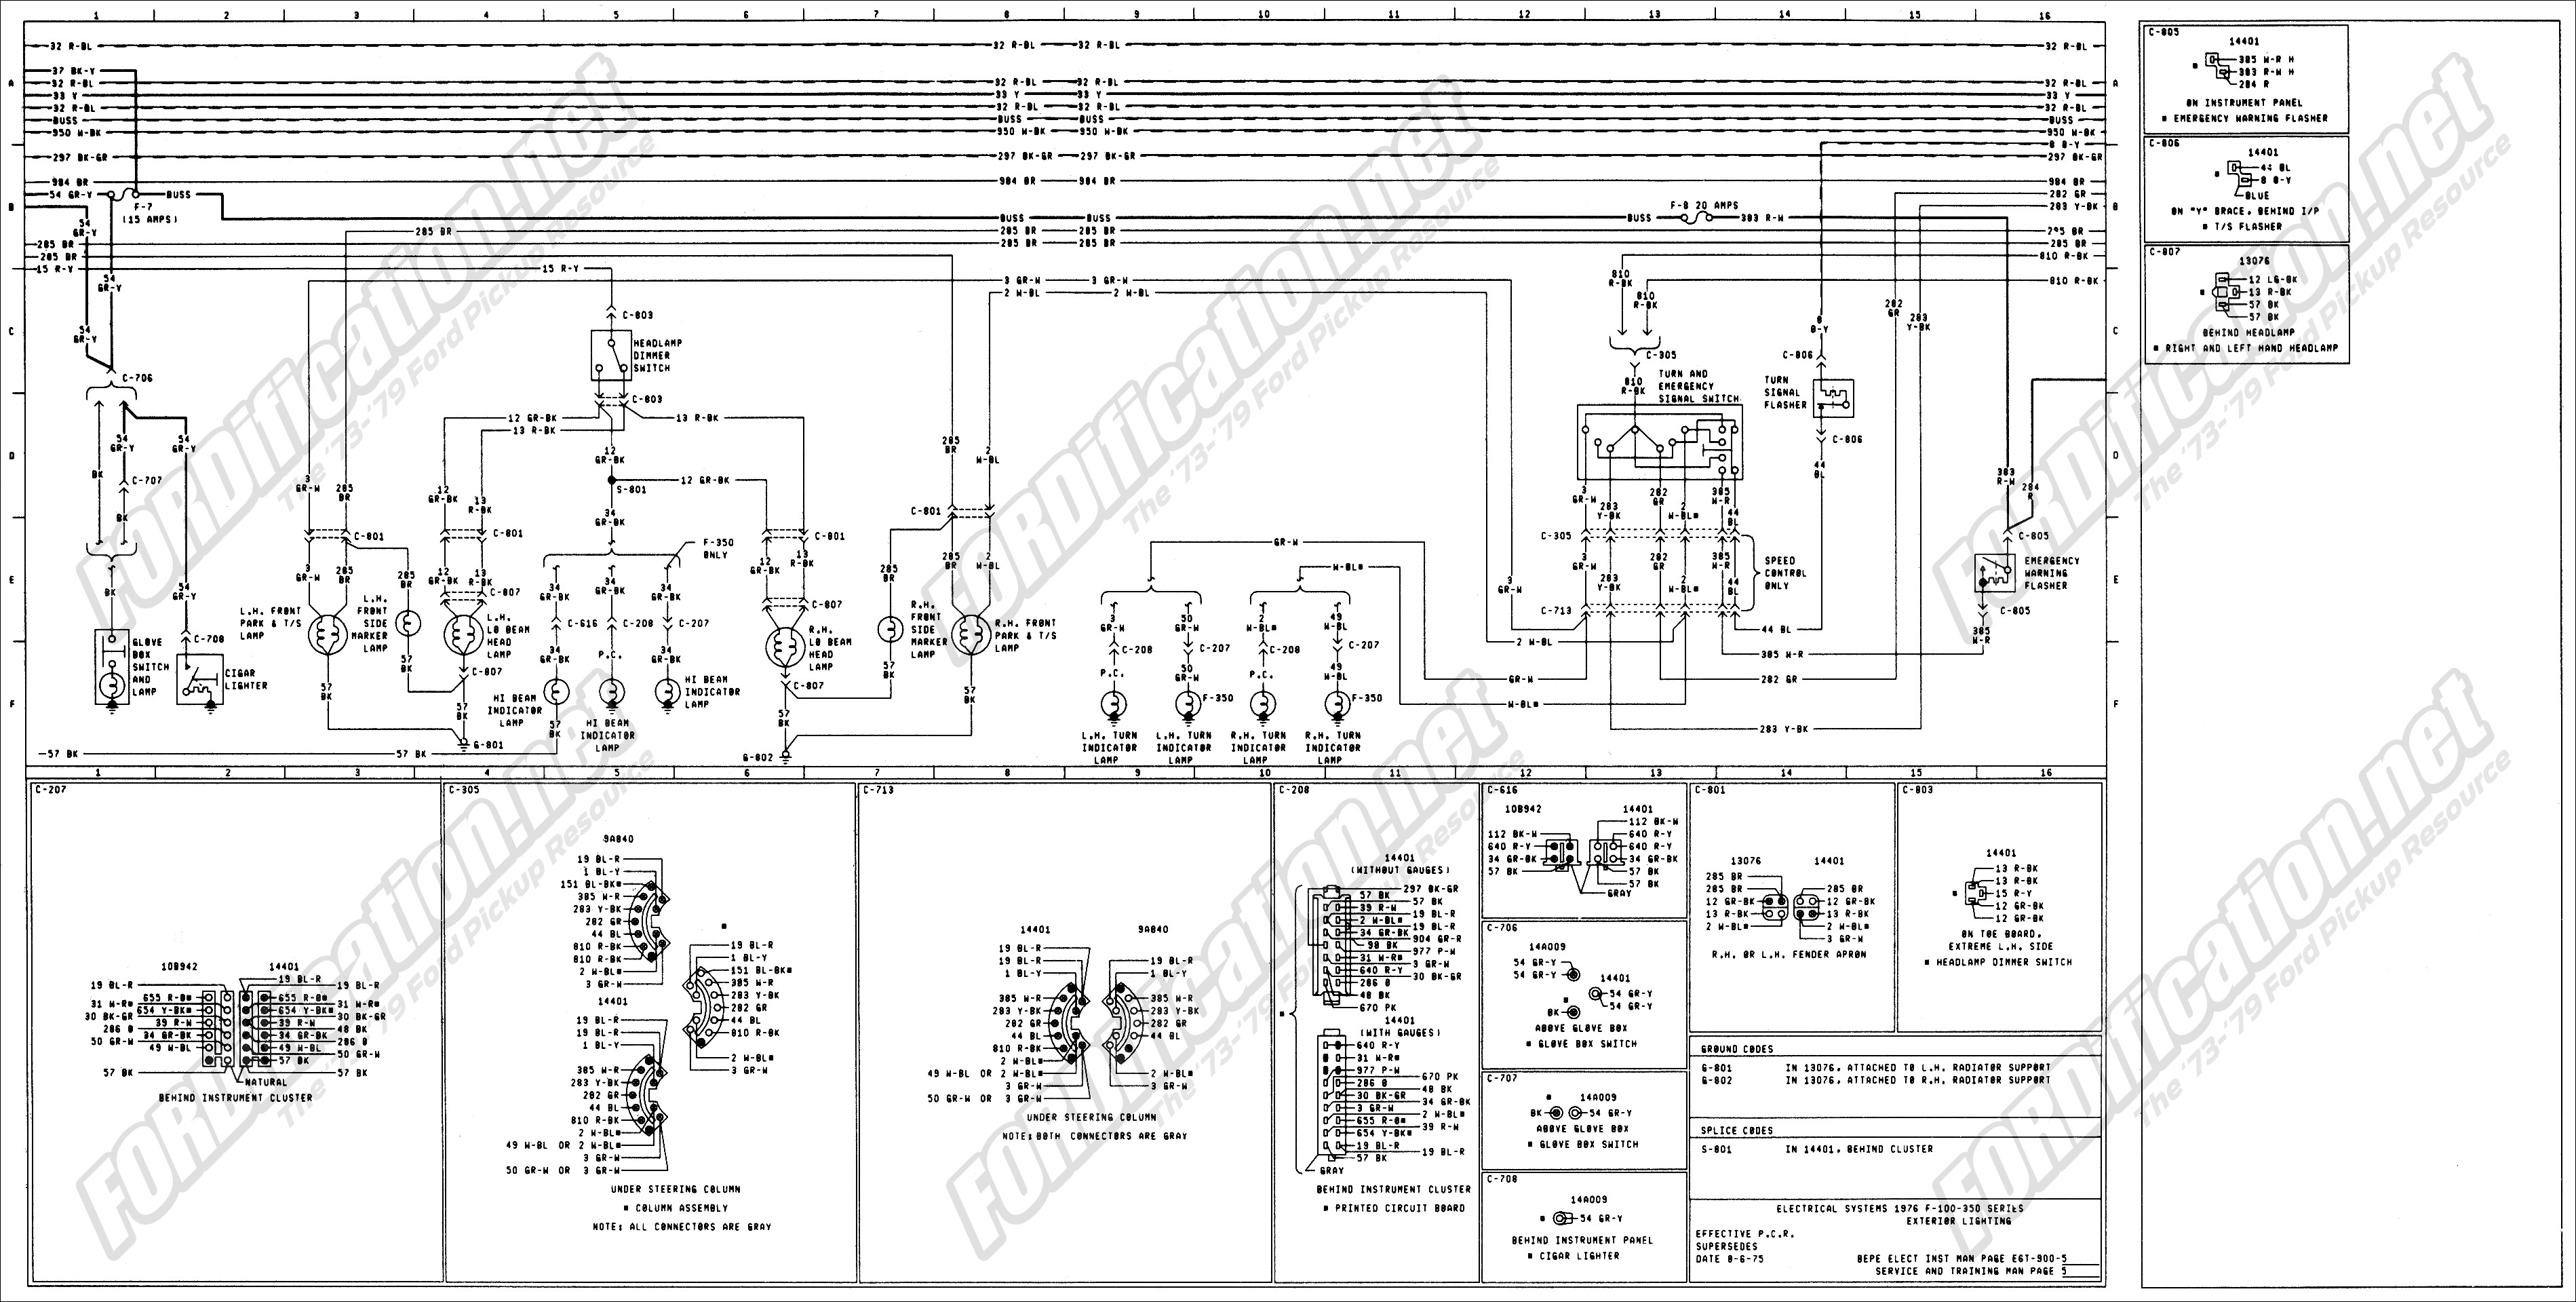 wiring harness schematic for 1969